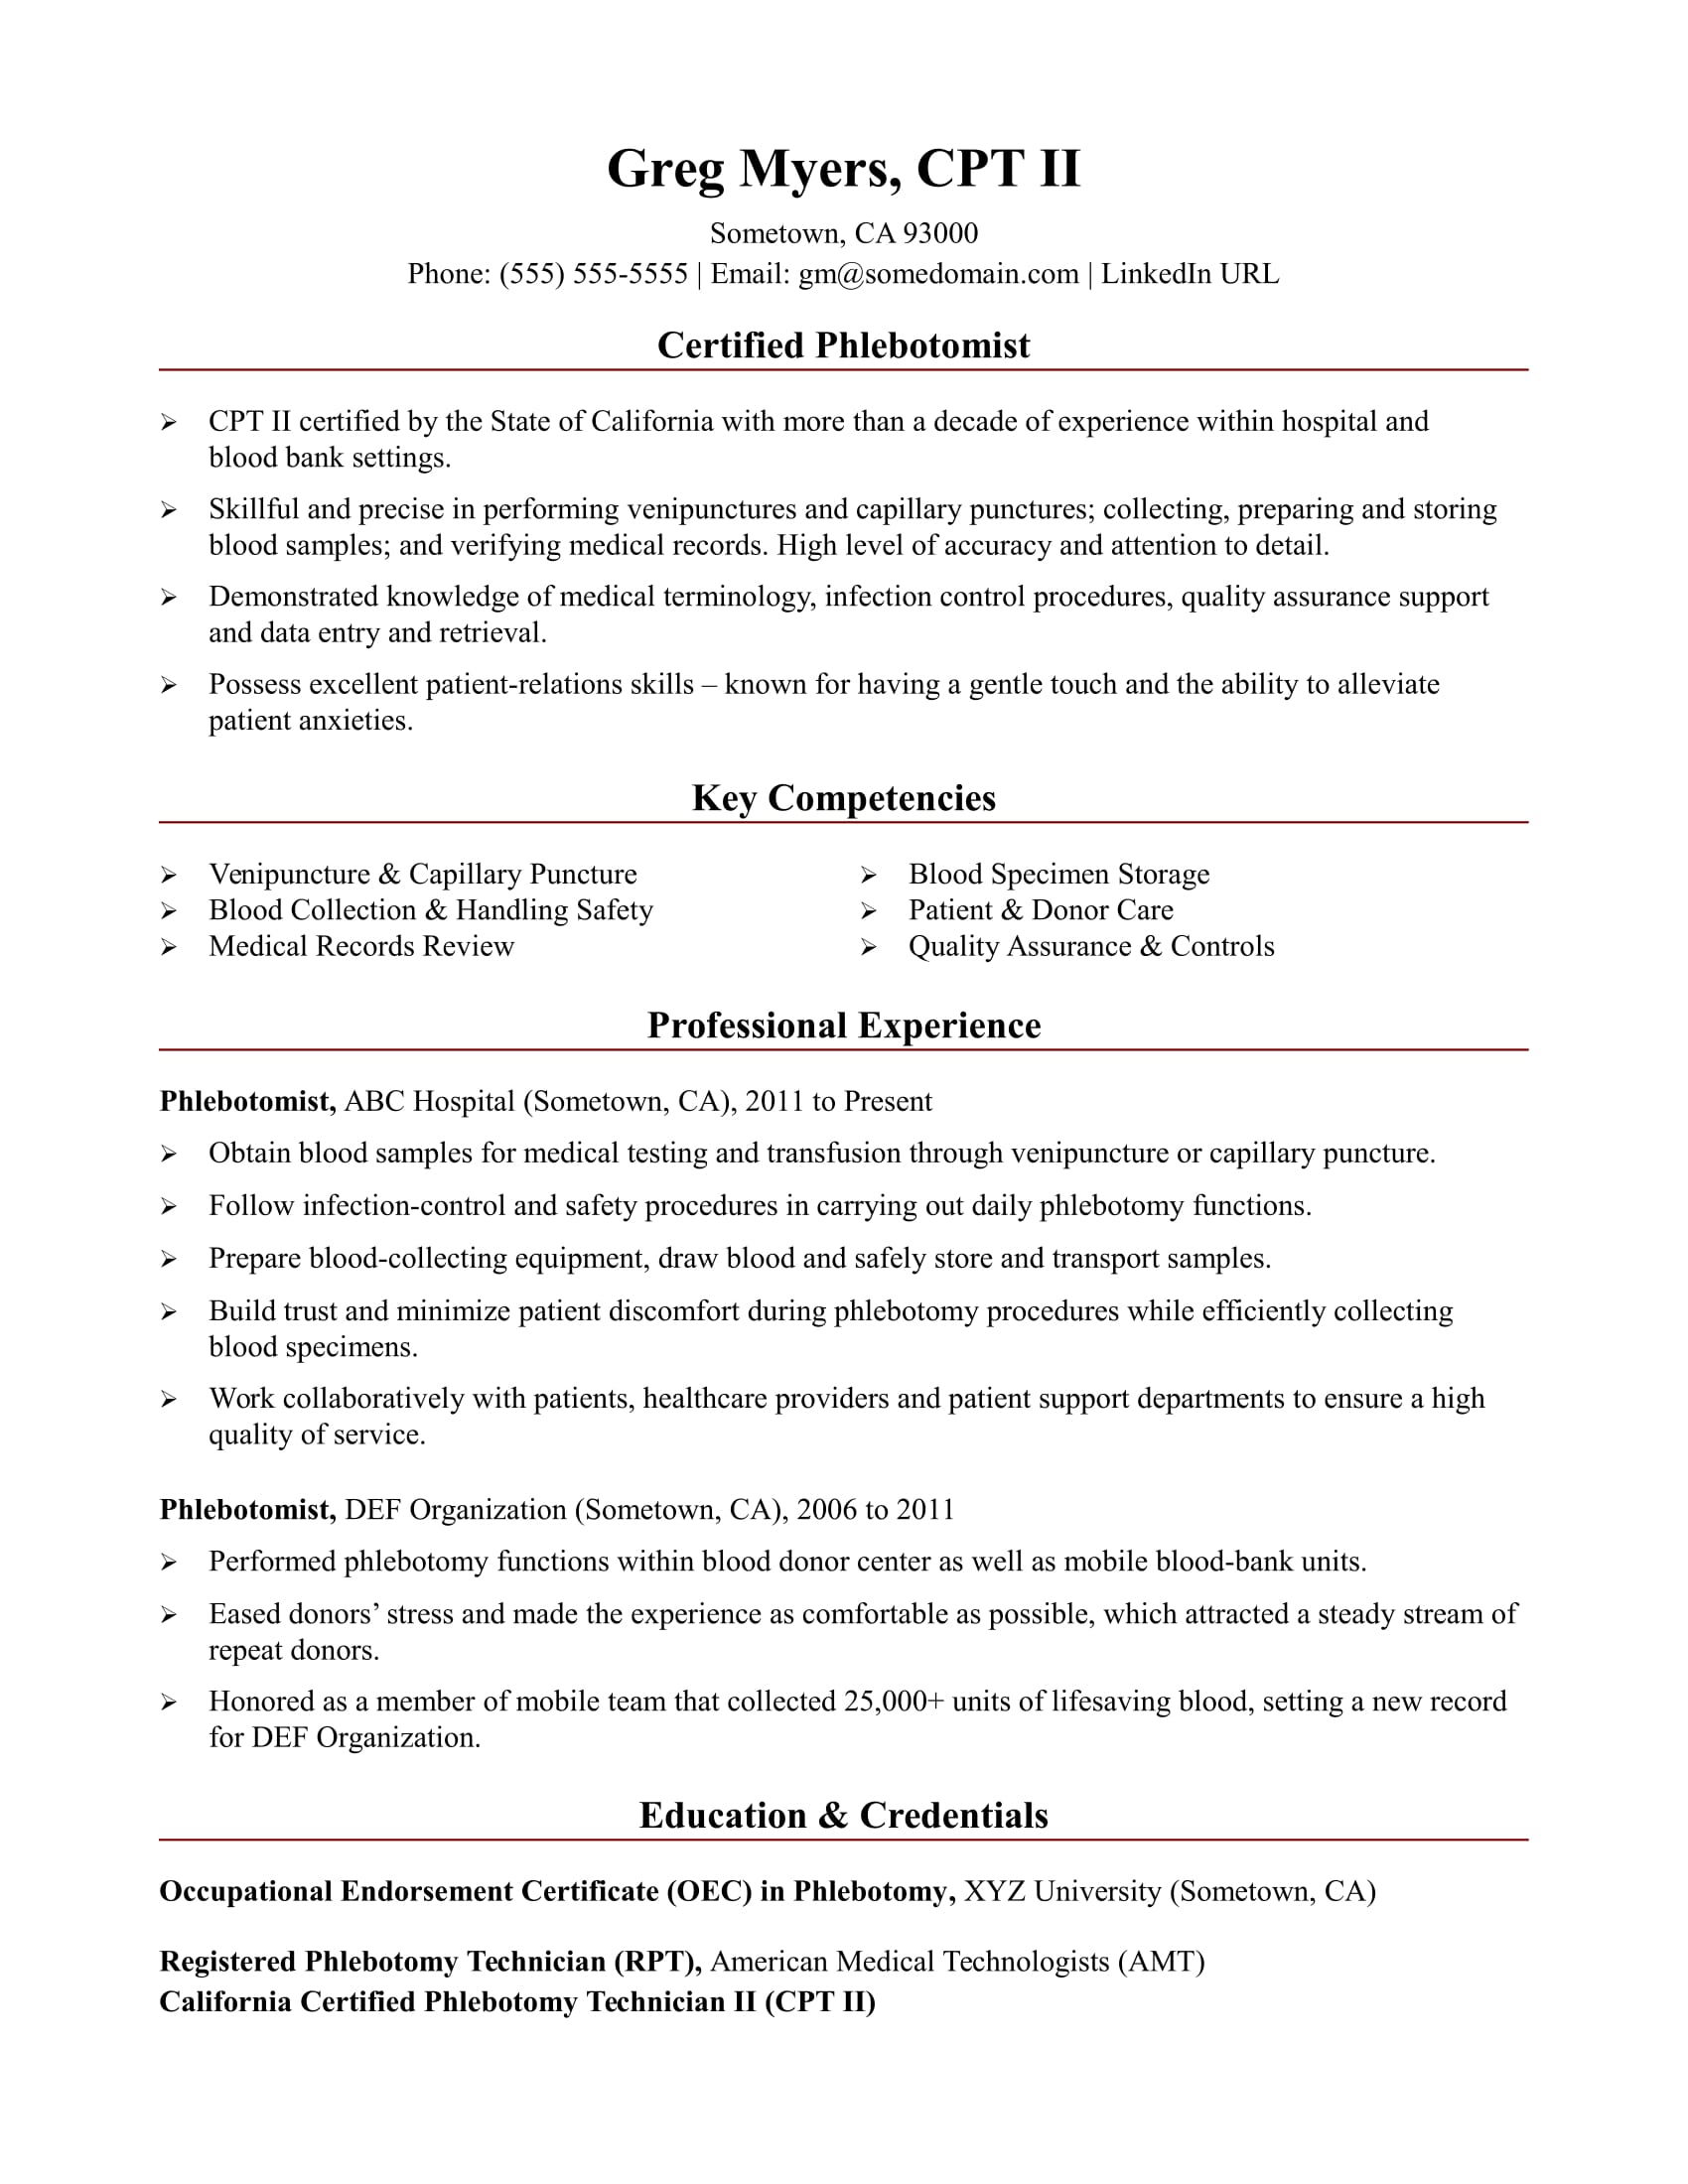 Sample Resume For A Phlebotomist  Where To Put Certifications On Resume